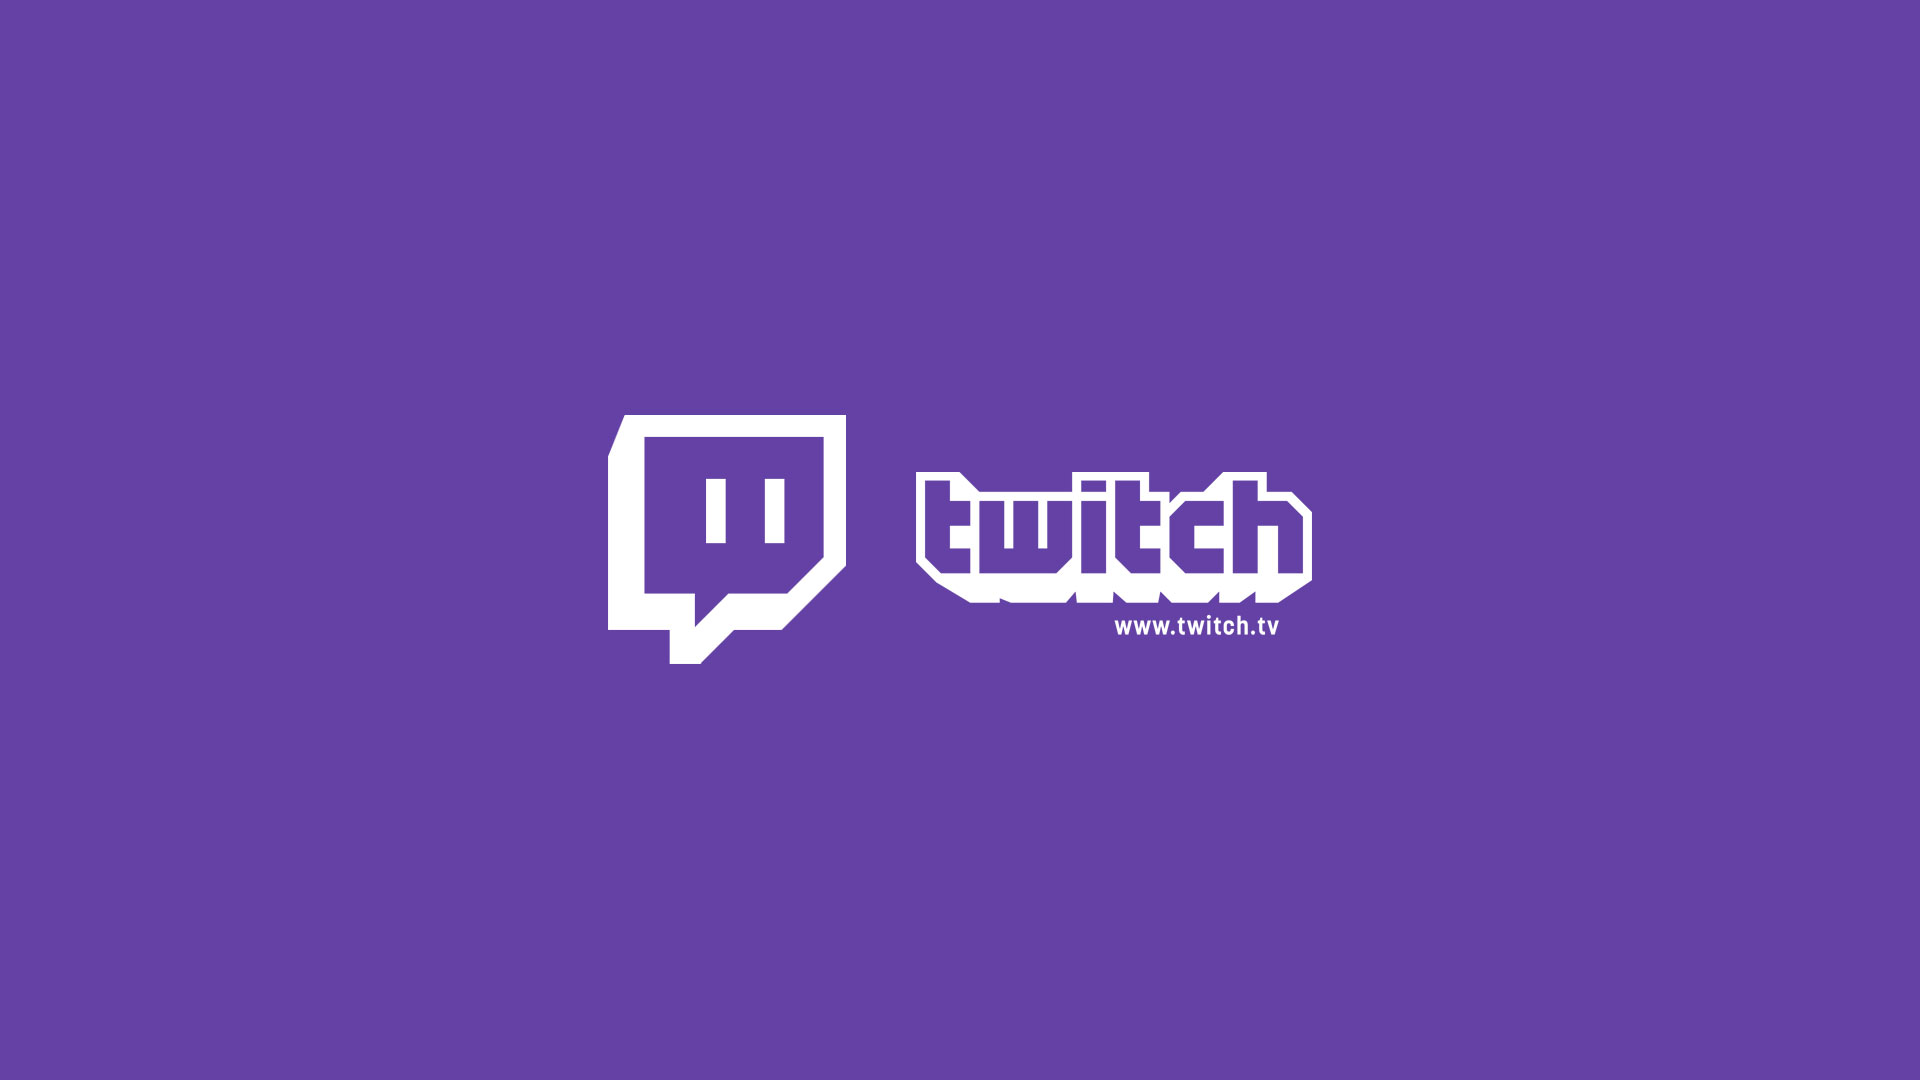 how to download twitch videos to computer